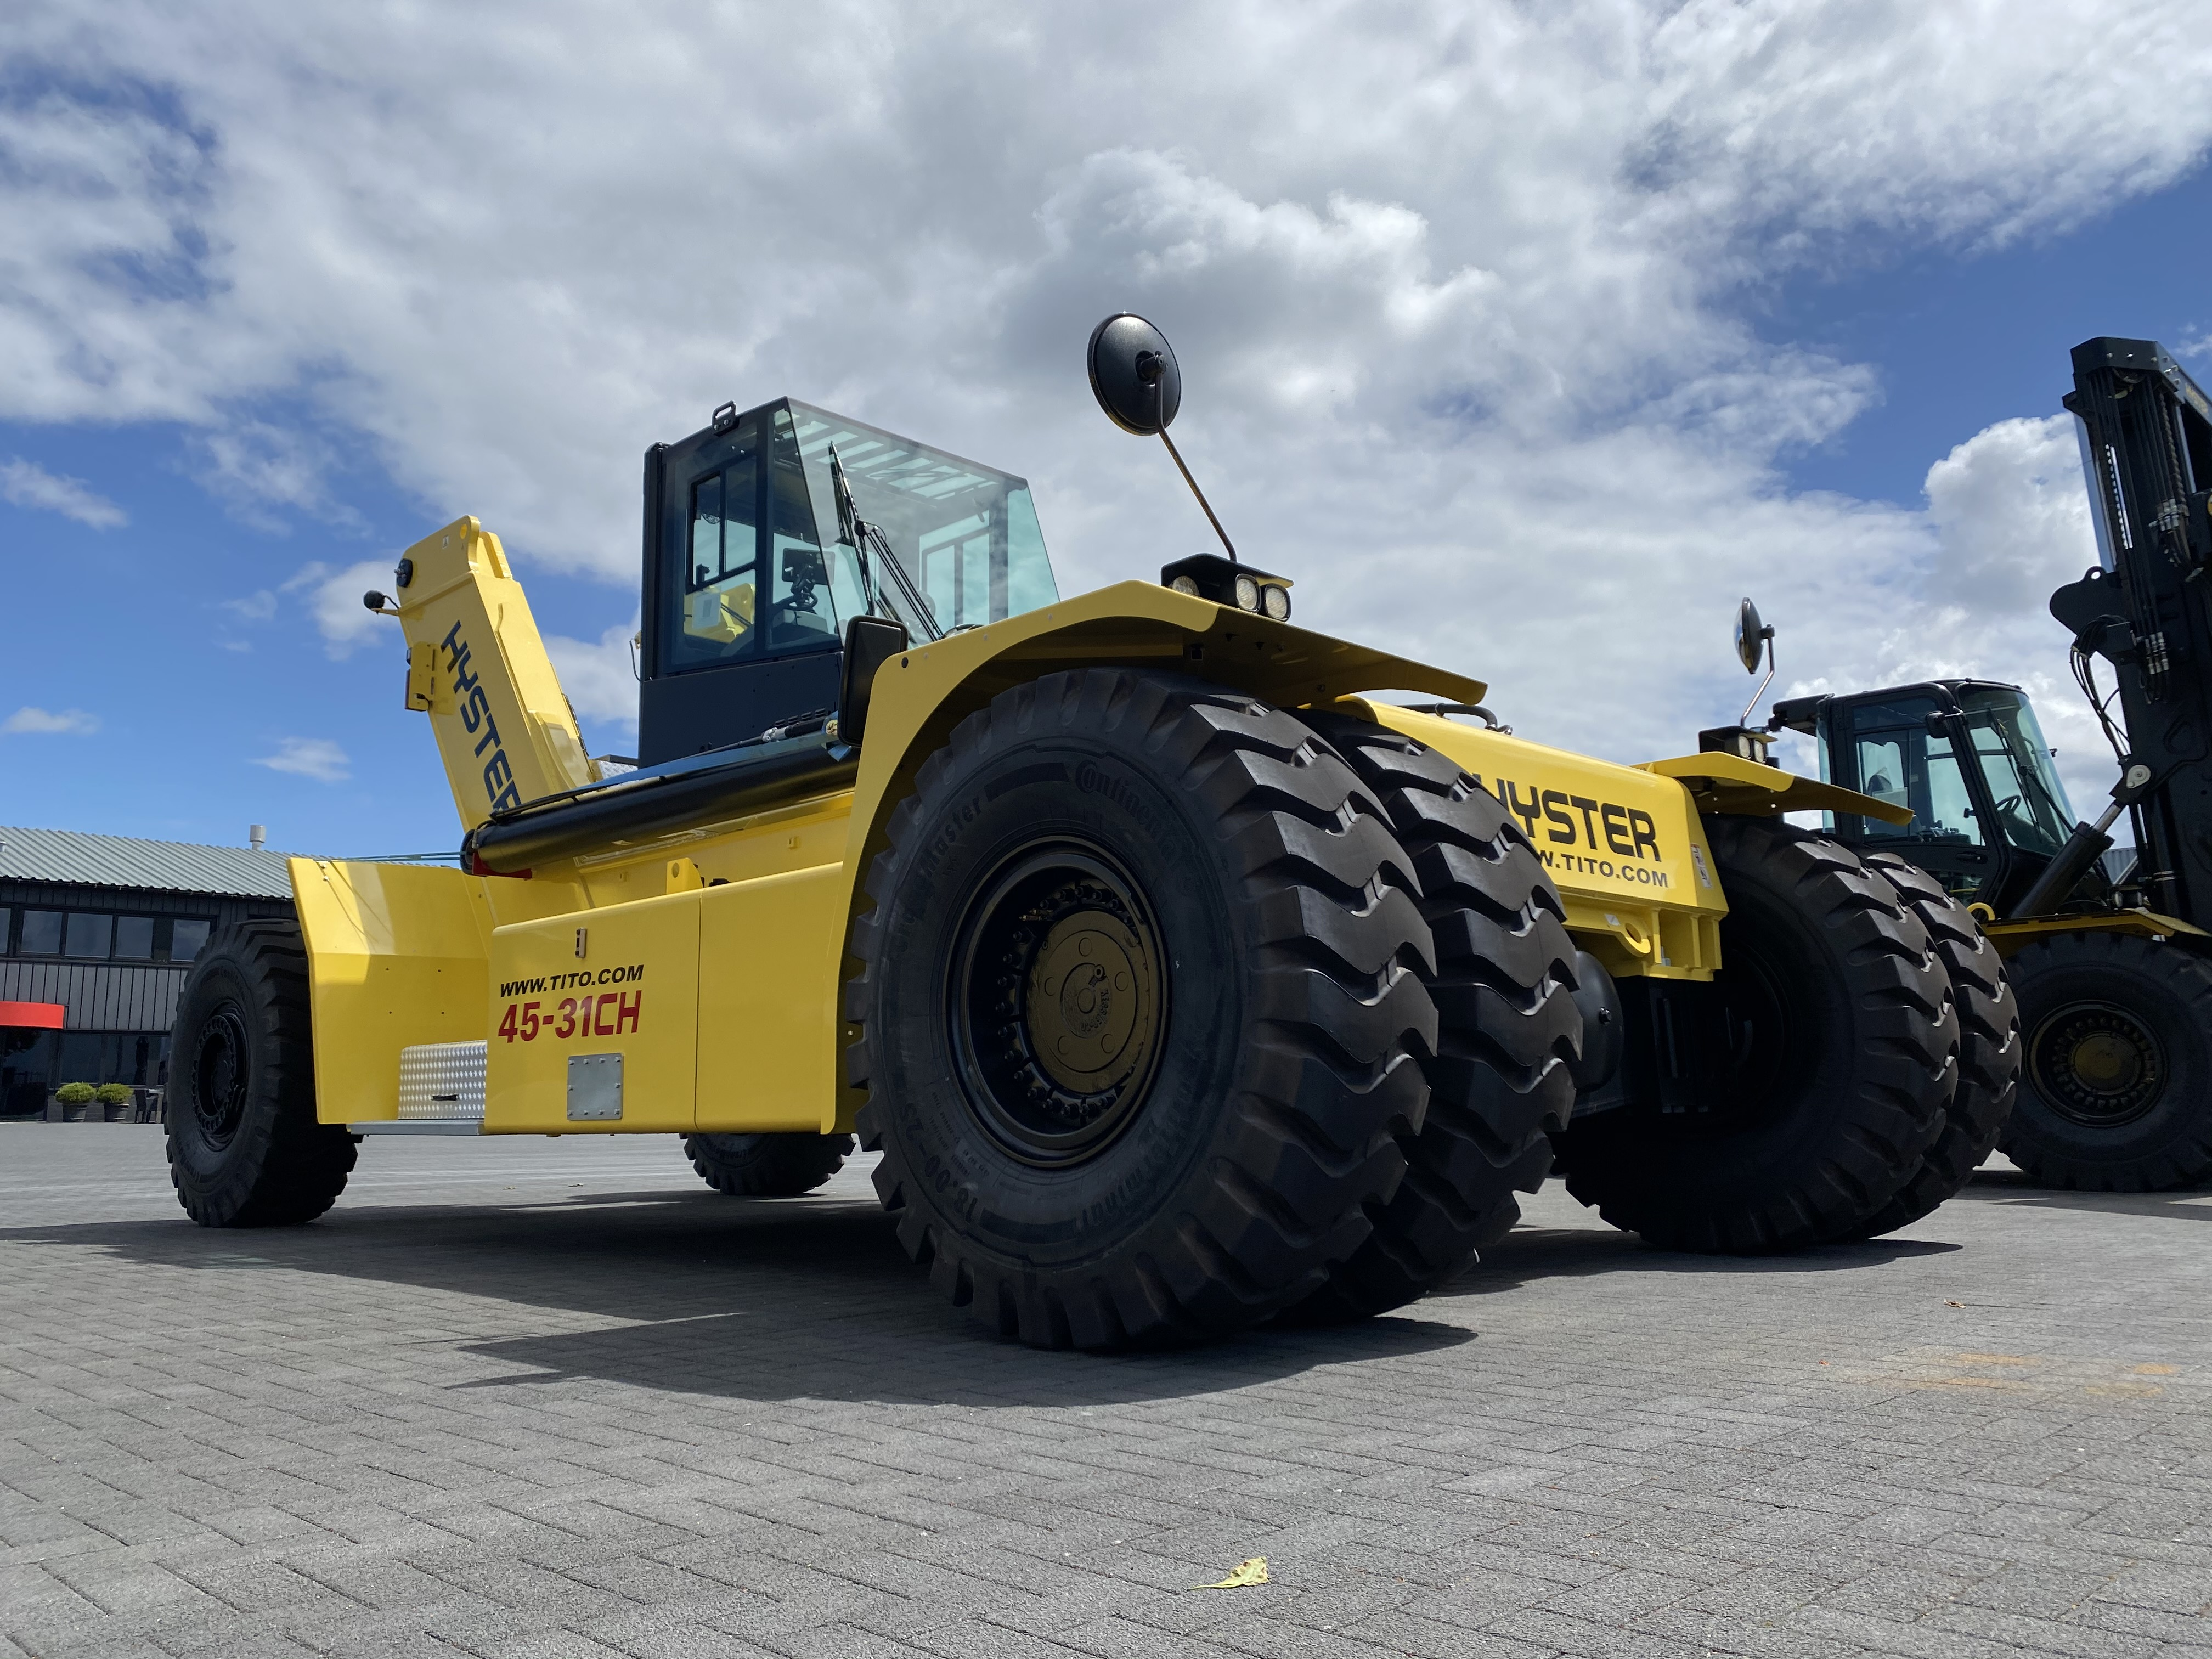 New 45 ton hyster reach stacker for sale